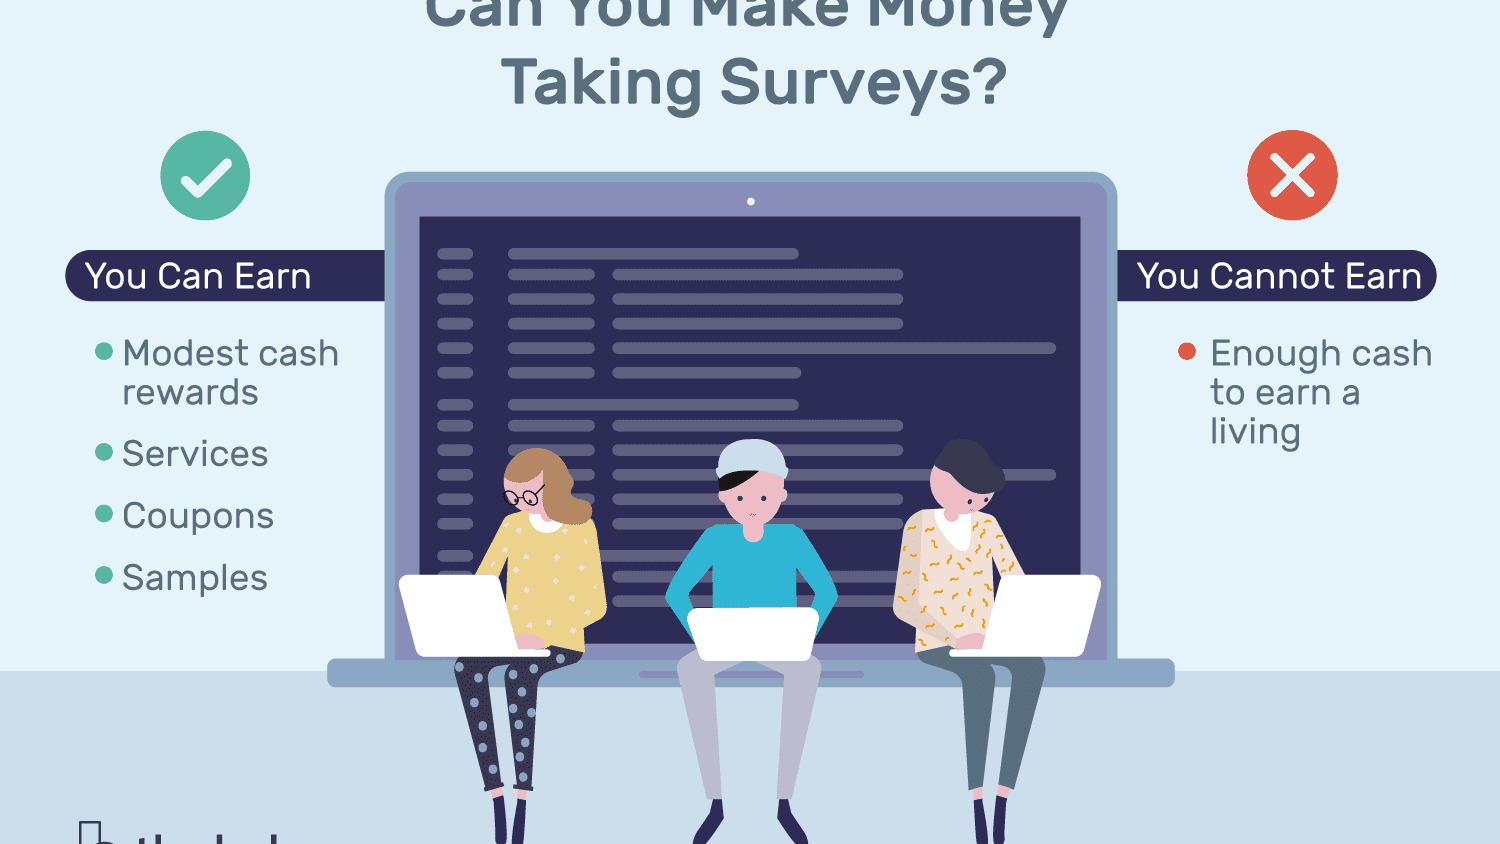 Legitimate Survey Taker Jobs And How To Avoid Scams